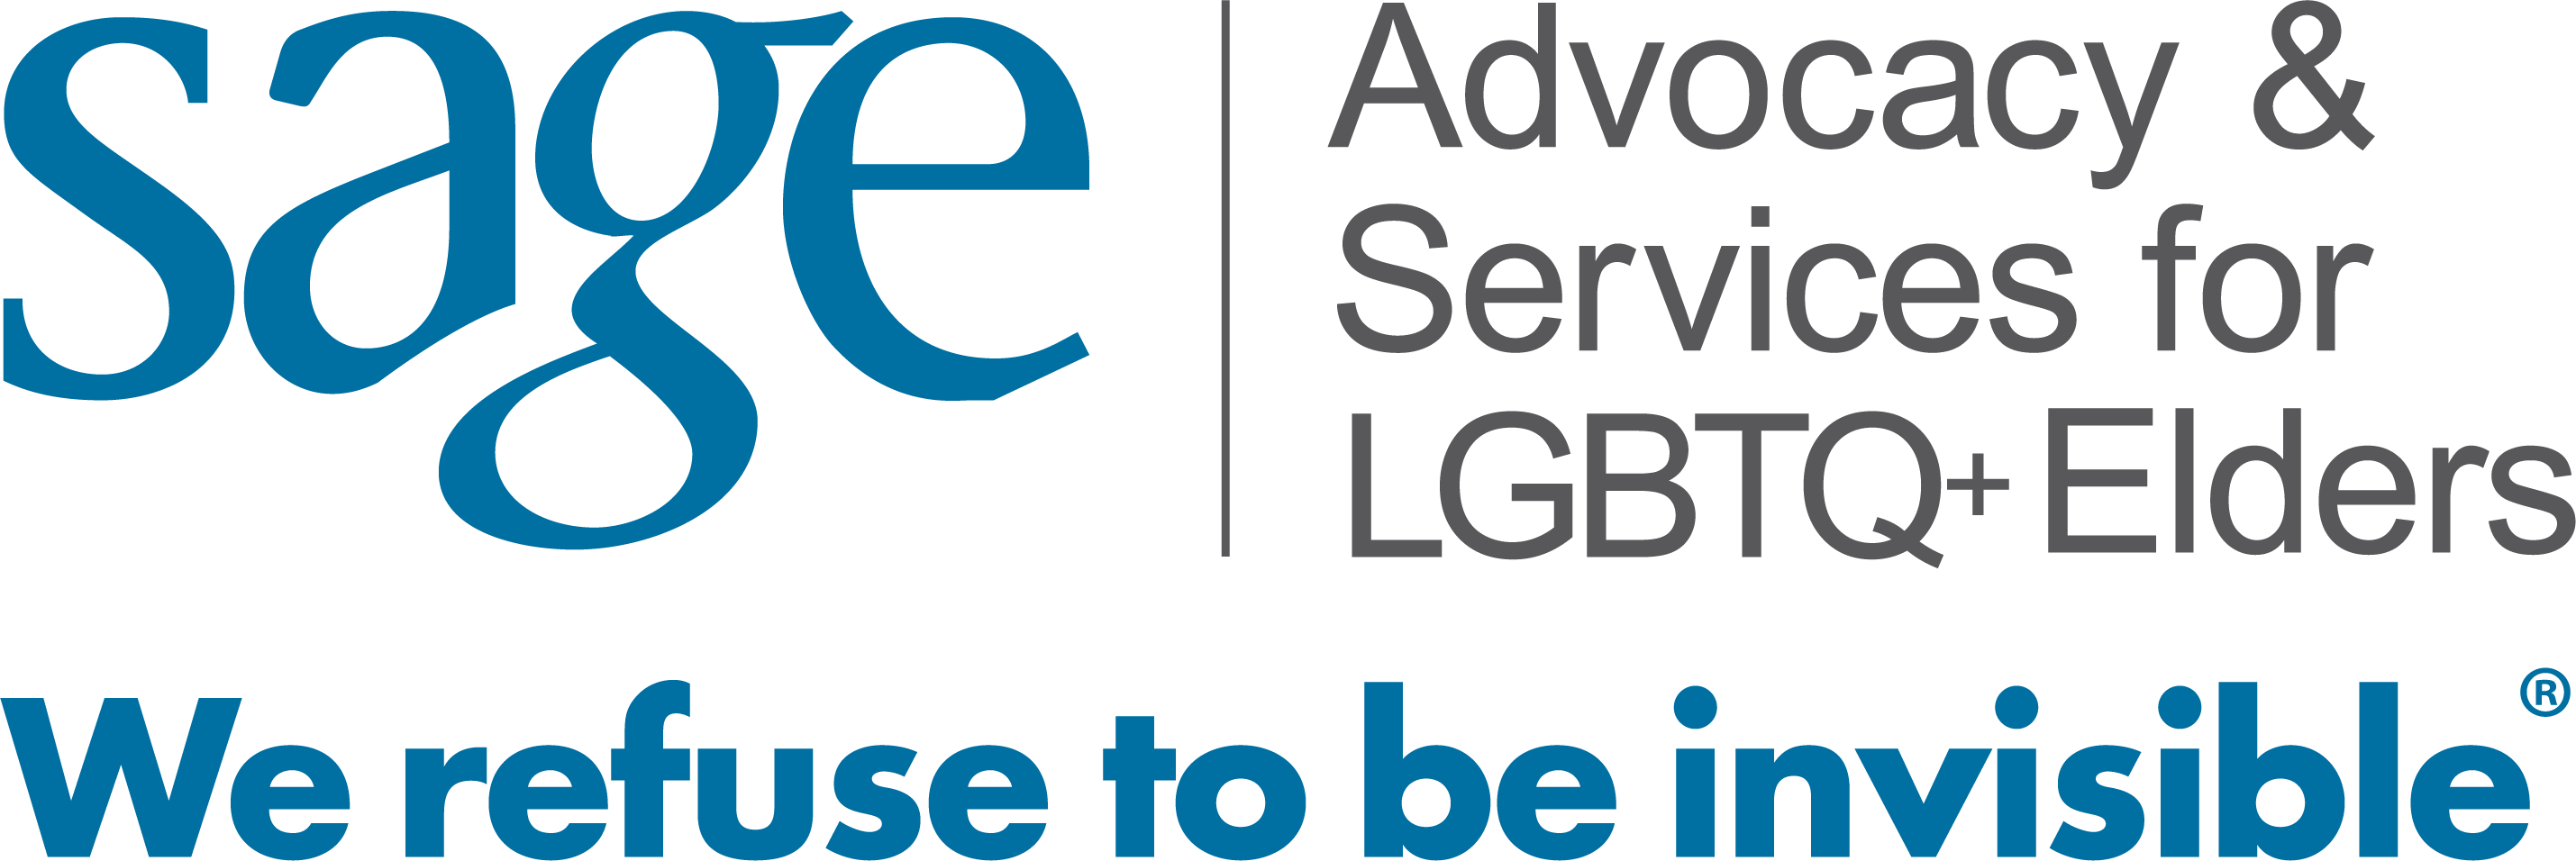 Advocacy & Services for LGBT Elders